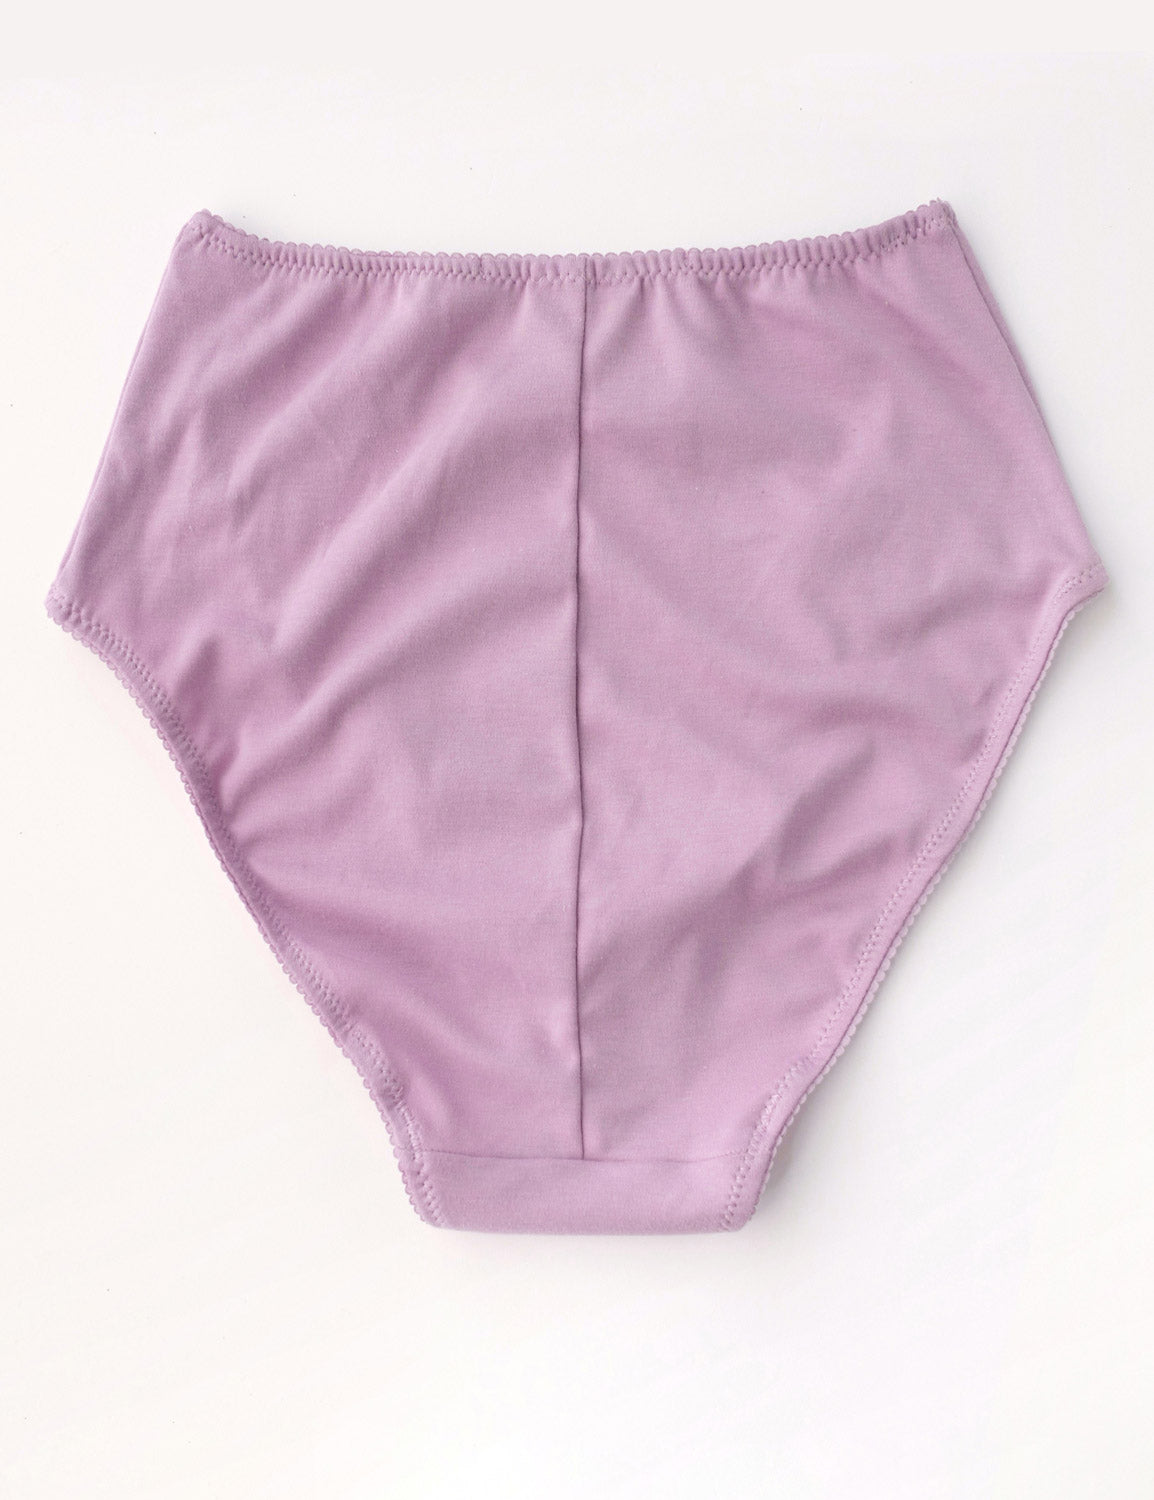 High Boy Undies - Lilac